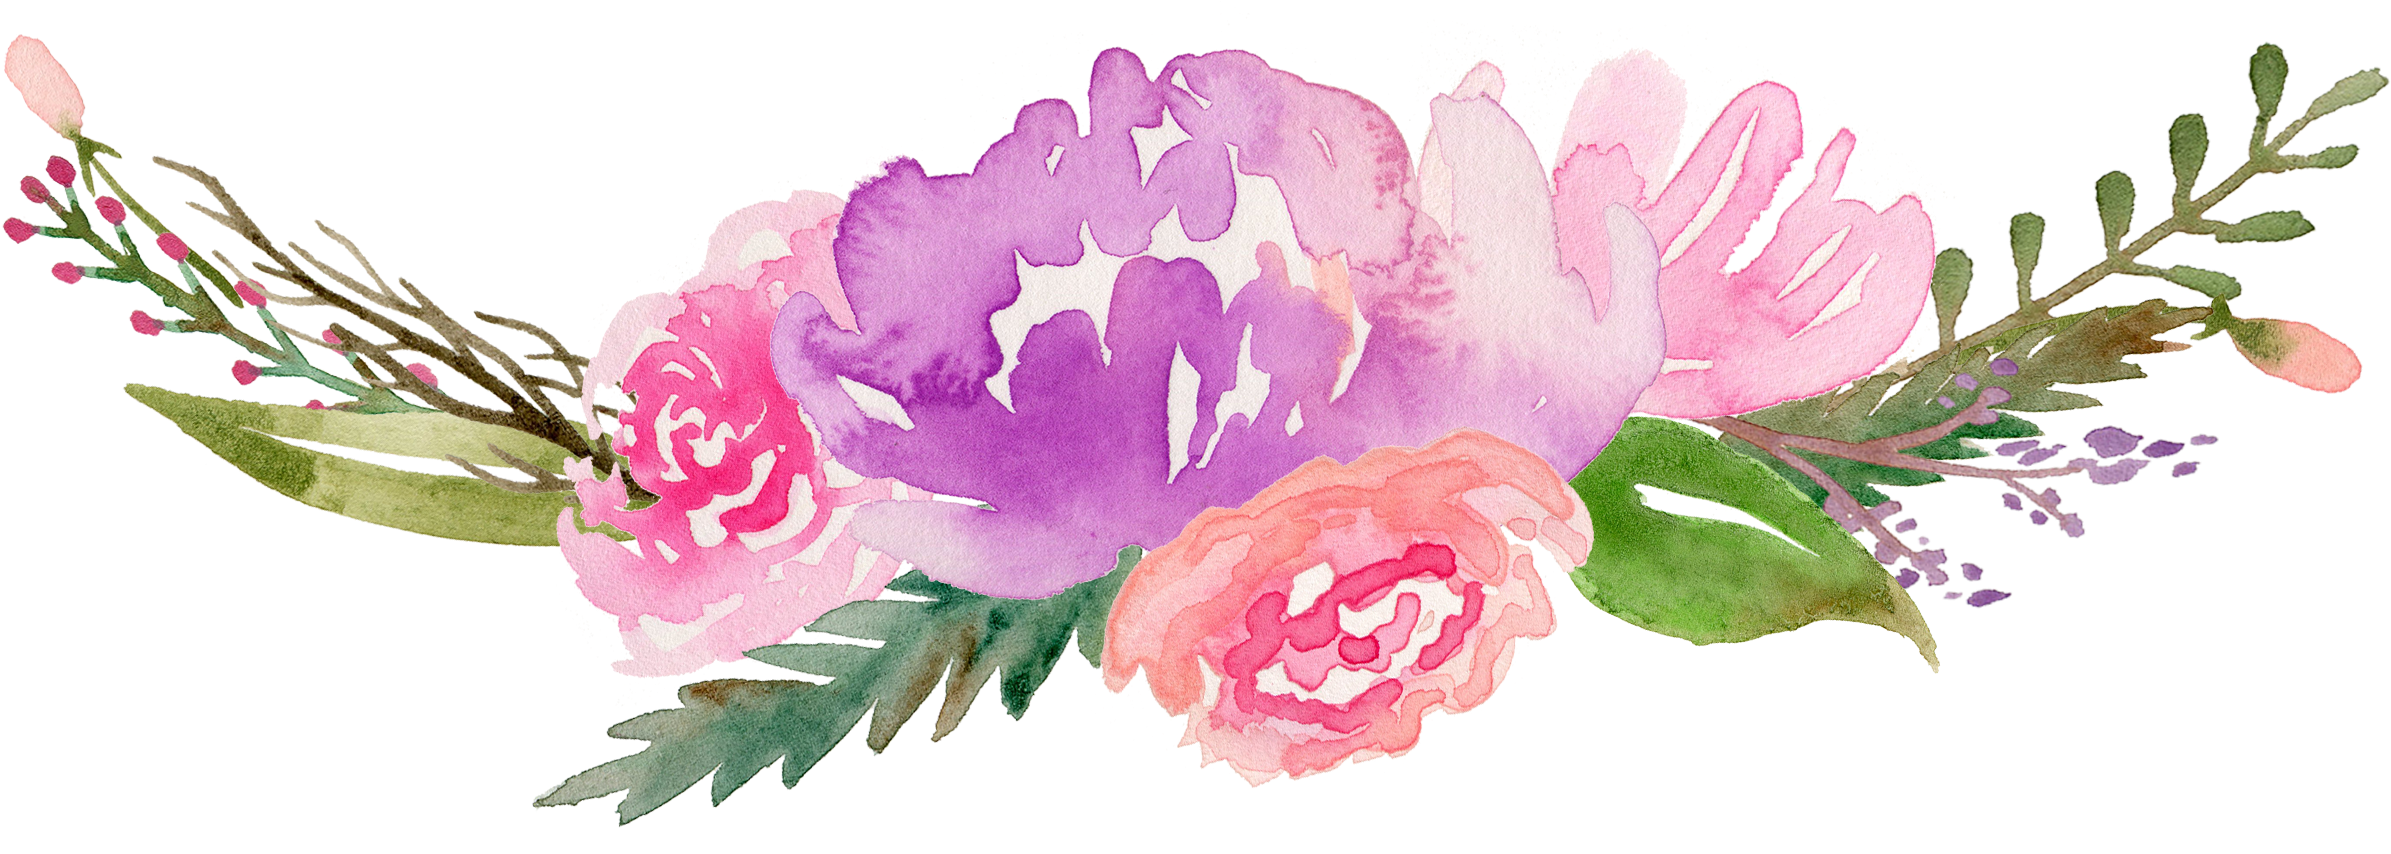 Download Royalty Free Flowers Watercolor Painting Clip Art Along